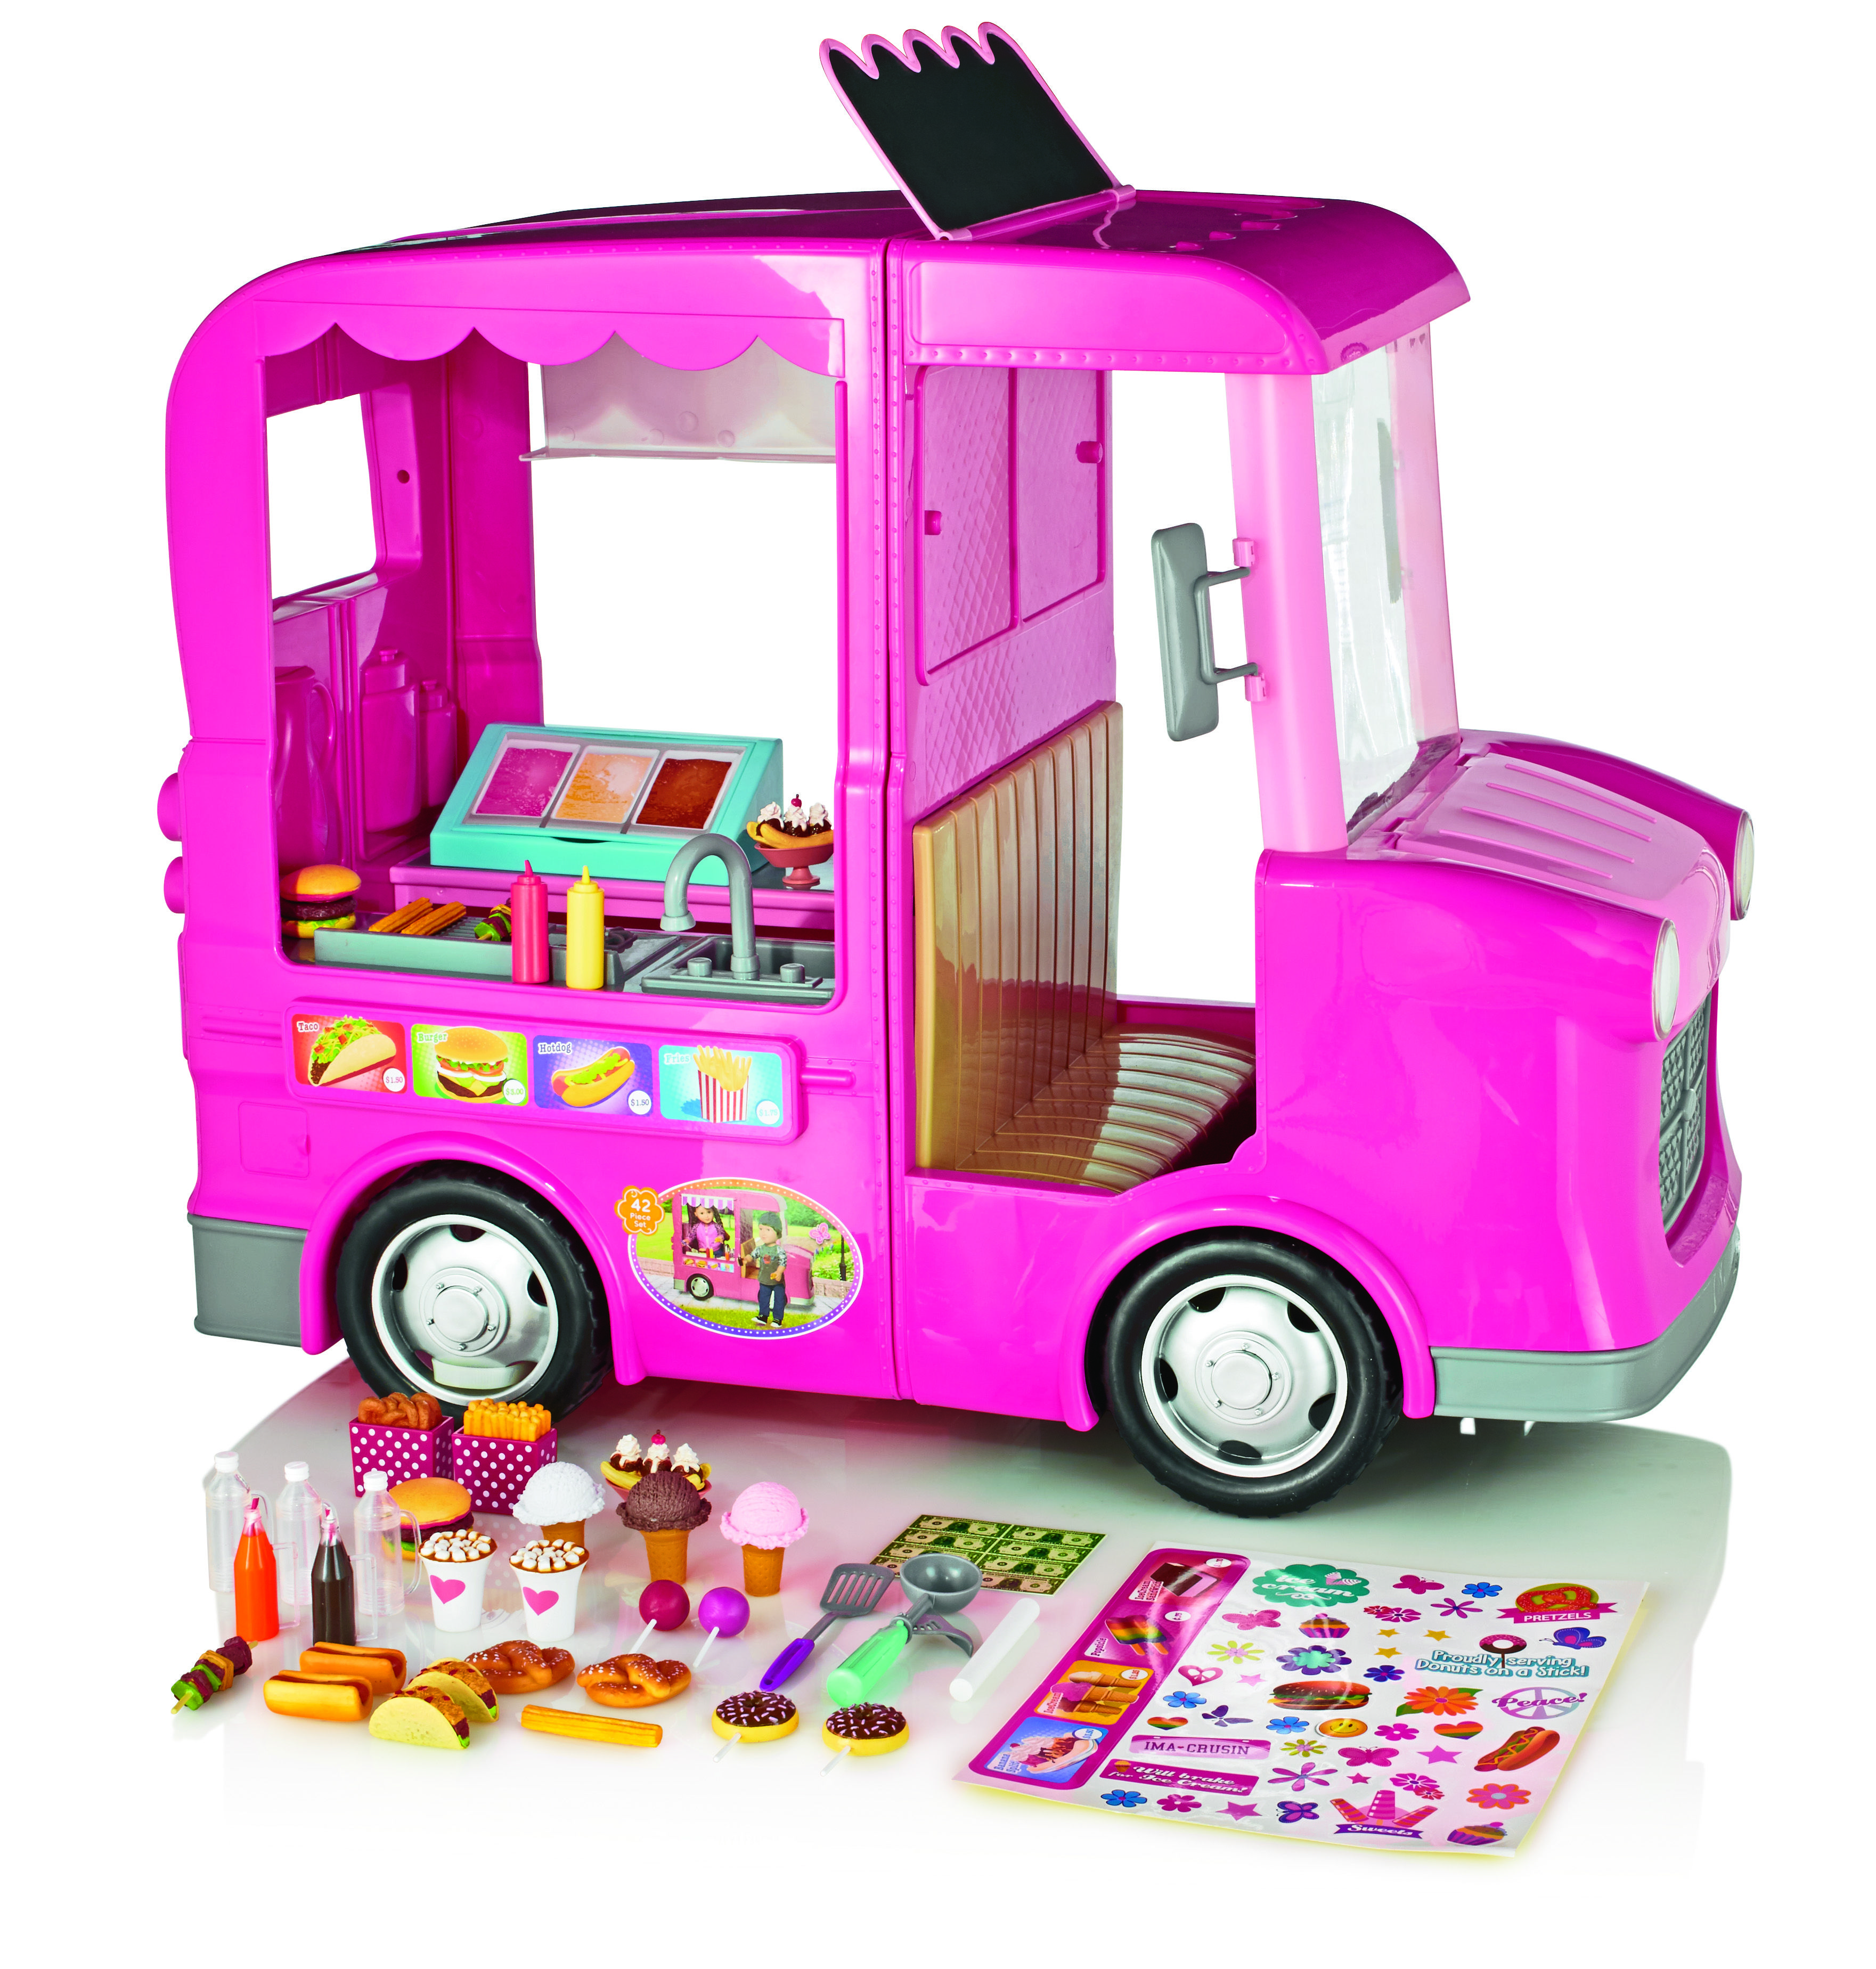 The My Life As Food Truck A Walmart Exclusive Is Great For The